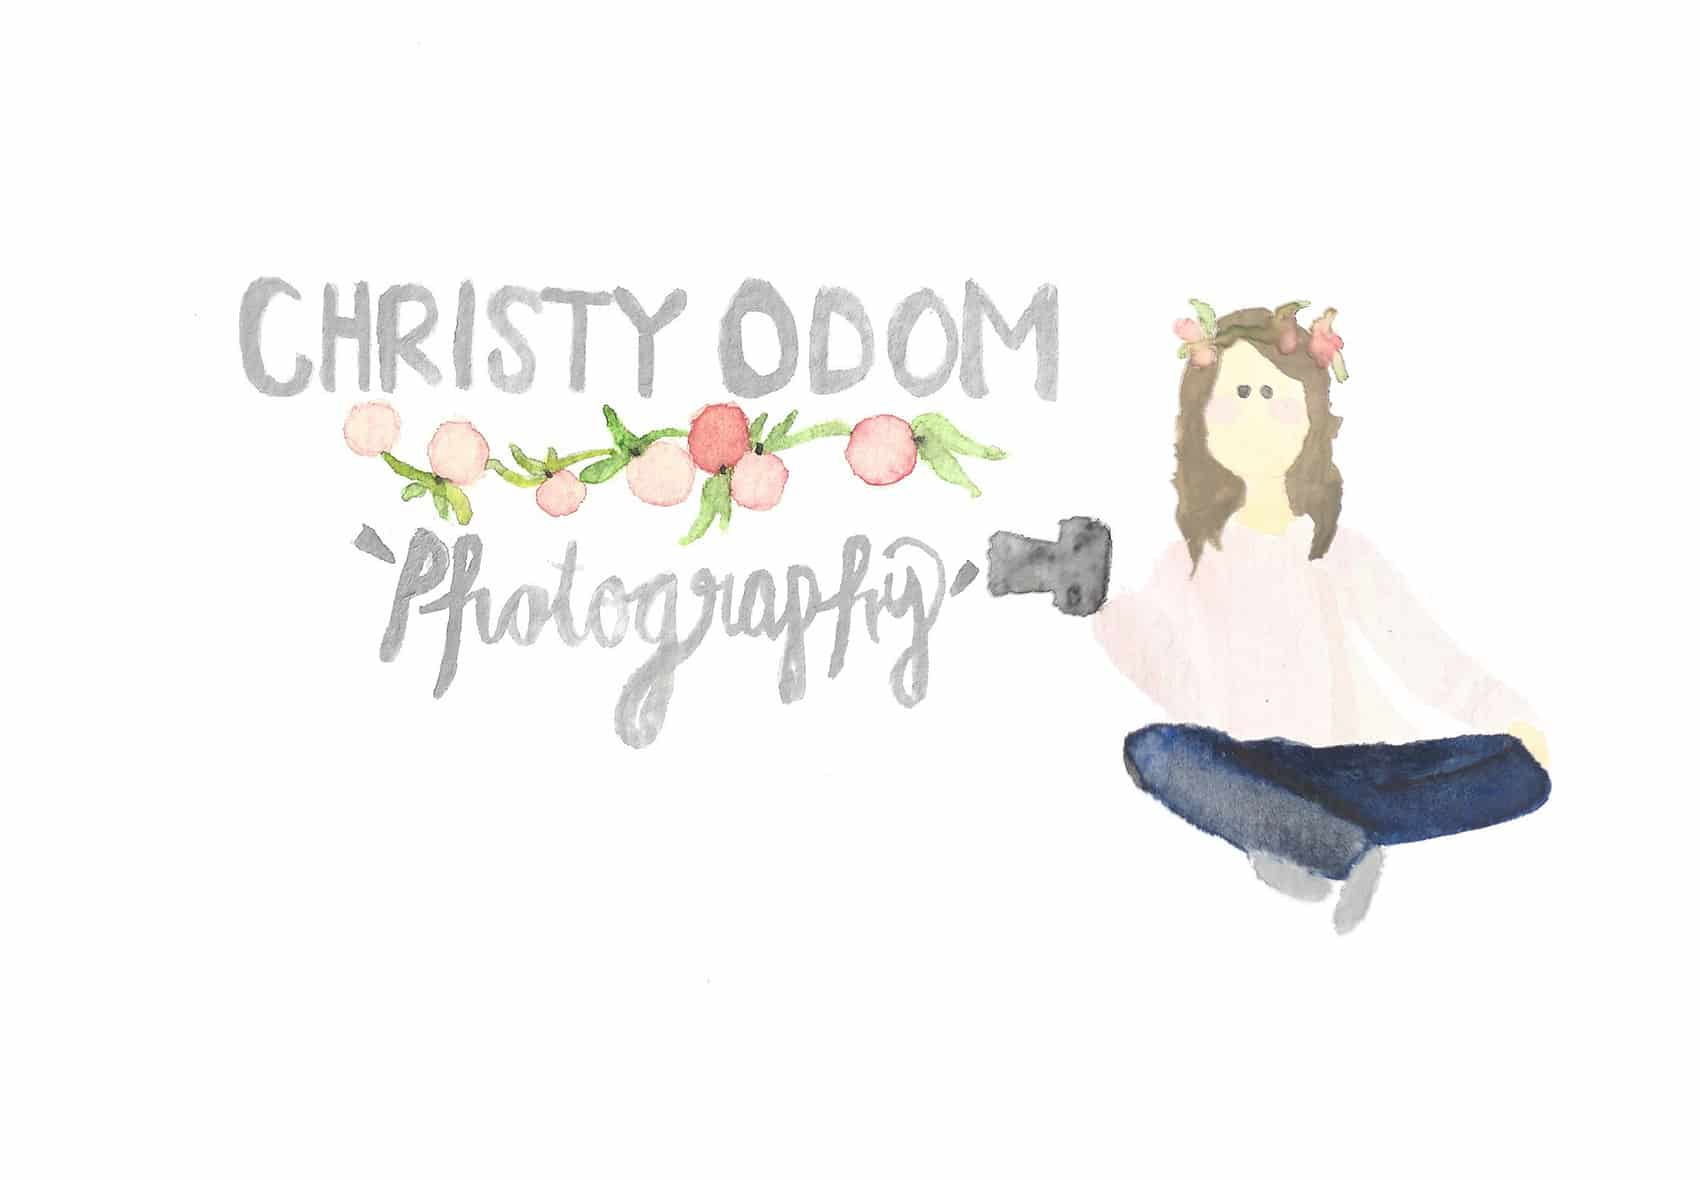 meet Christy not using